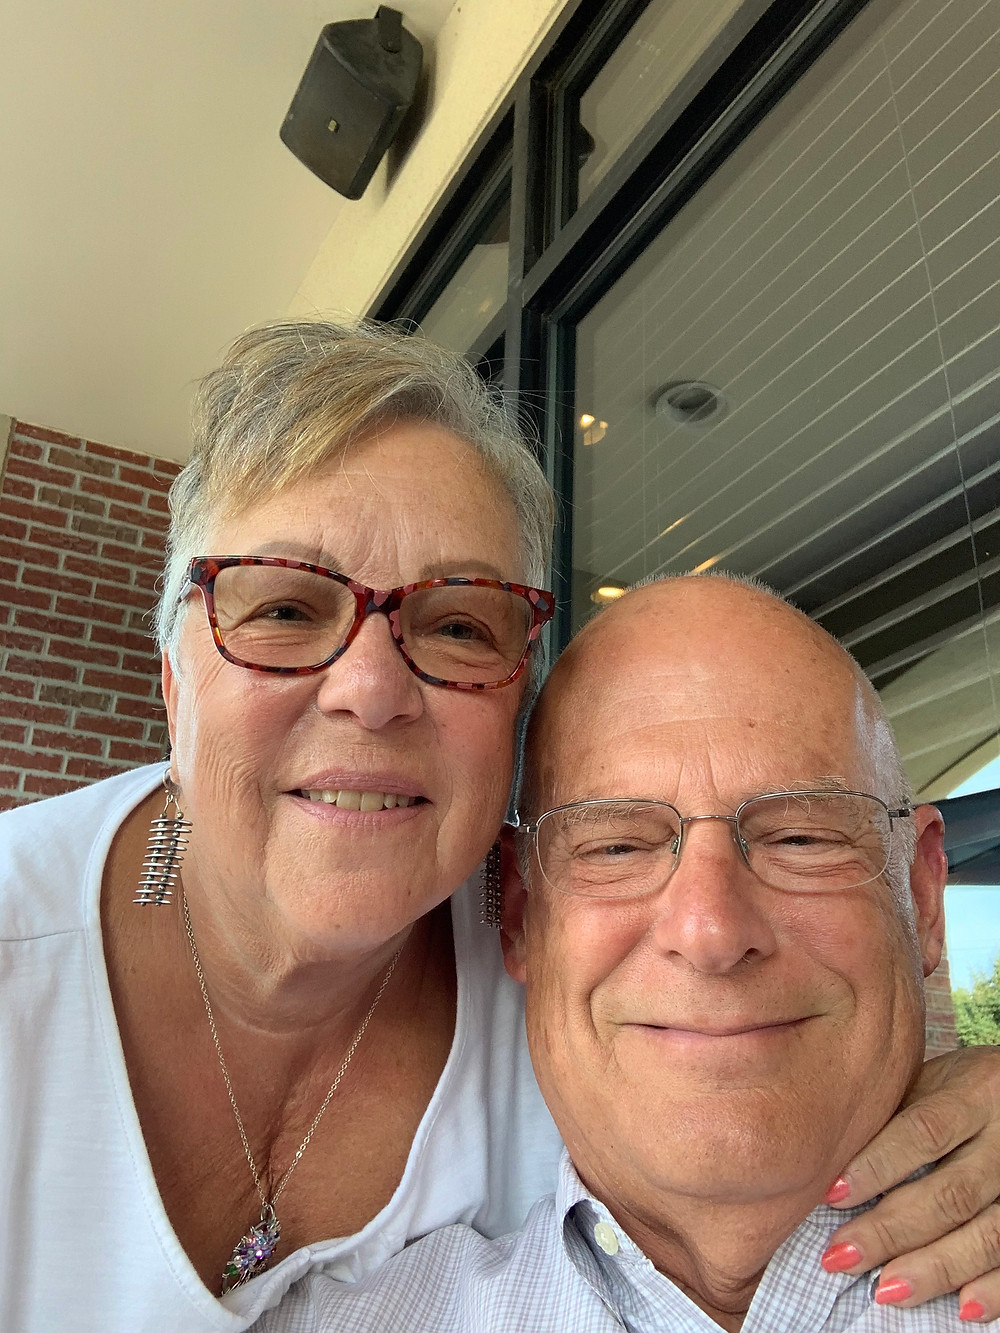 Susie and Jim Silverman, going strong after 55 years